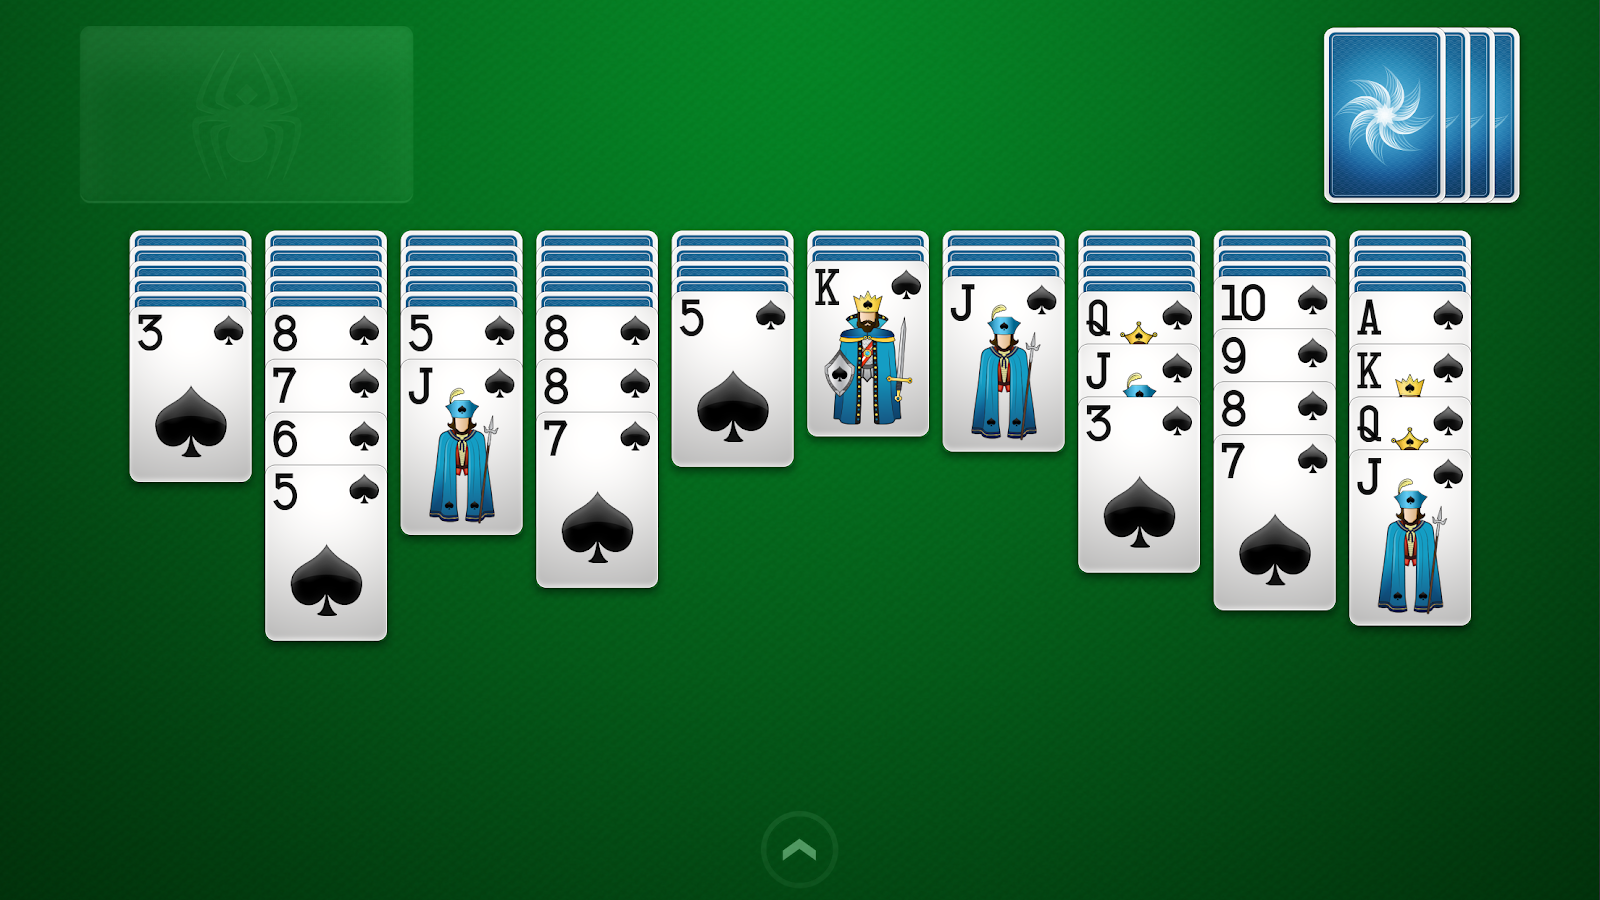 Spider Solitaire Apk Download Android Card Games Album Kartu Yu Gi Oh Duelist File